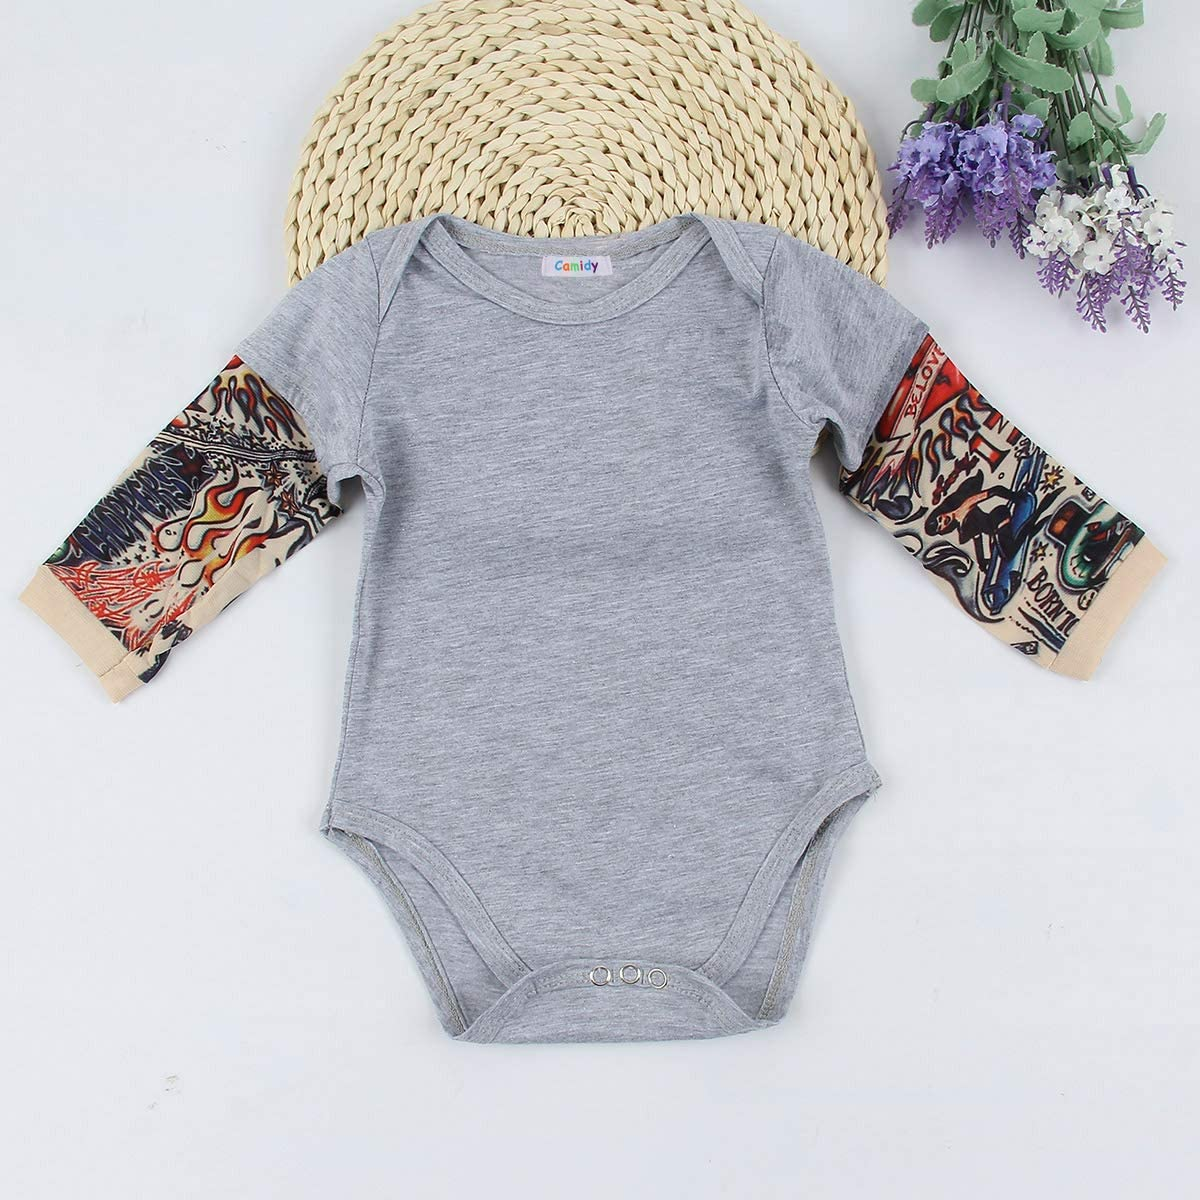 Camidy Infant Toddler Baby Boy Girl Tattoo Printed Sleeve Romper Bodysuit Jumpsuit